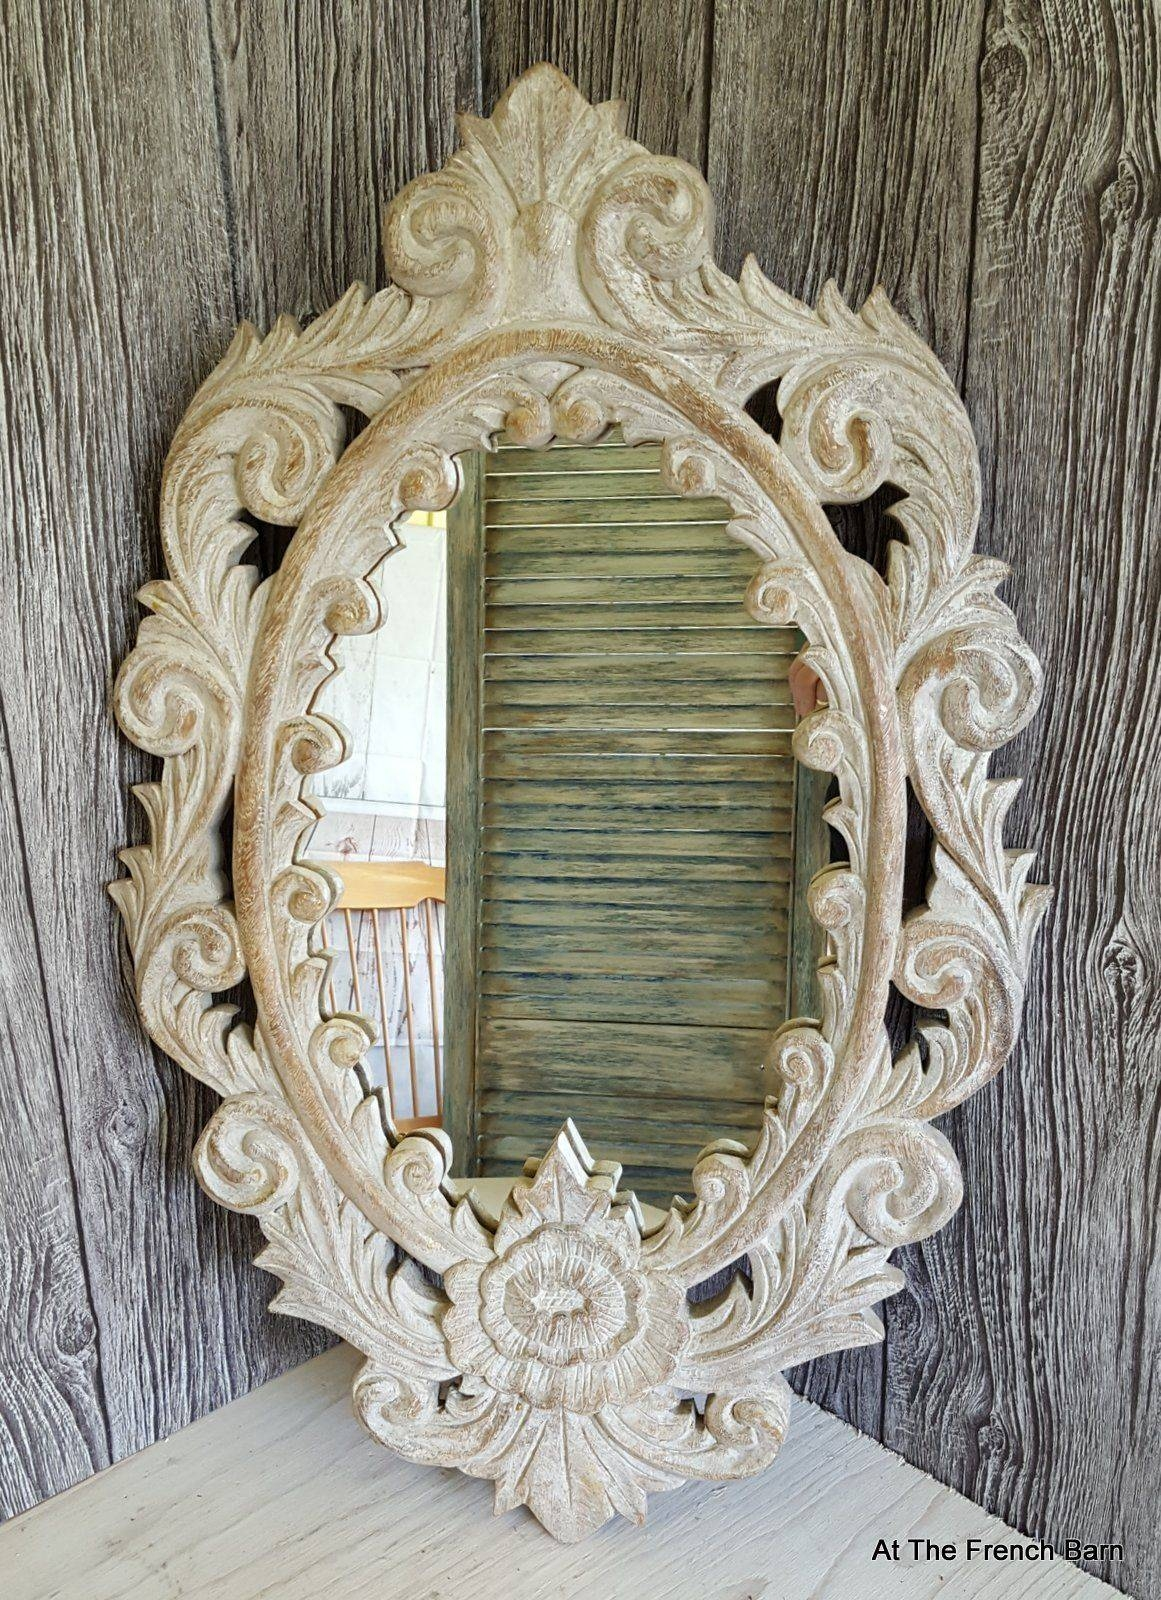 Mirrors - A Range Of Classic, Ornate And French Style within Ornate Vintage Mirrors (Image 6 of 15)